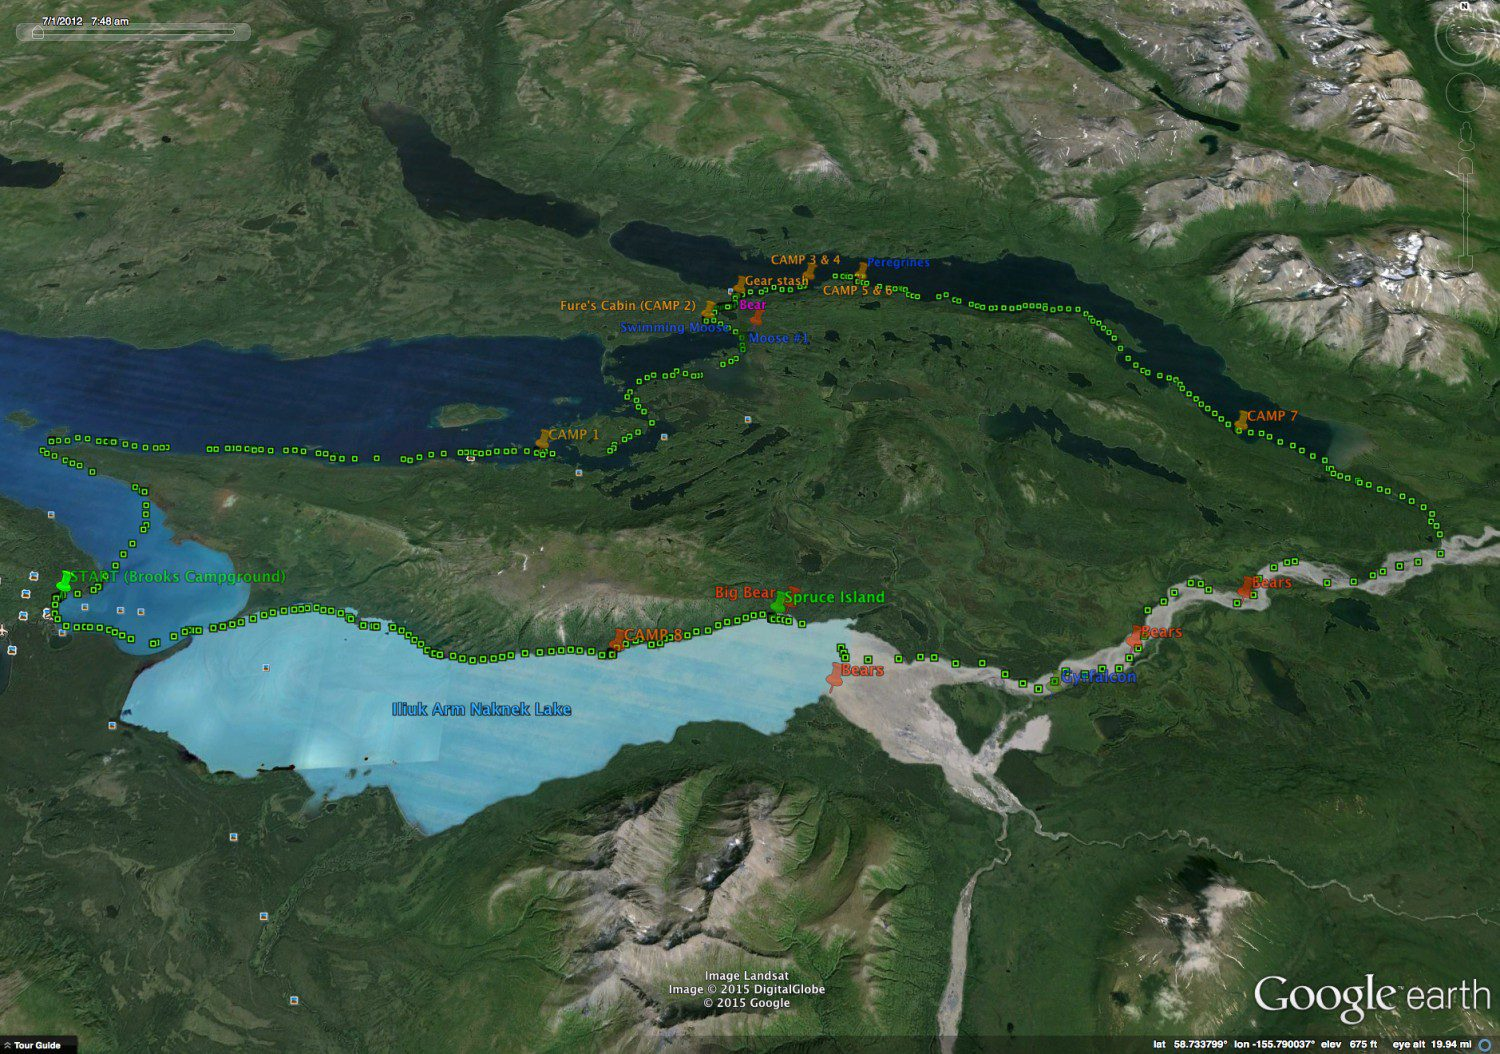 Our route shown in green and clockwise from Brooks Camp. Savonoski Loop, Katmai National Park.